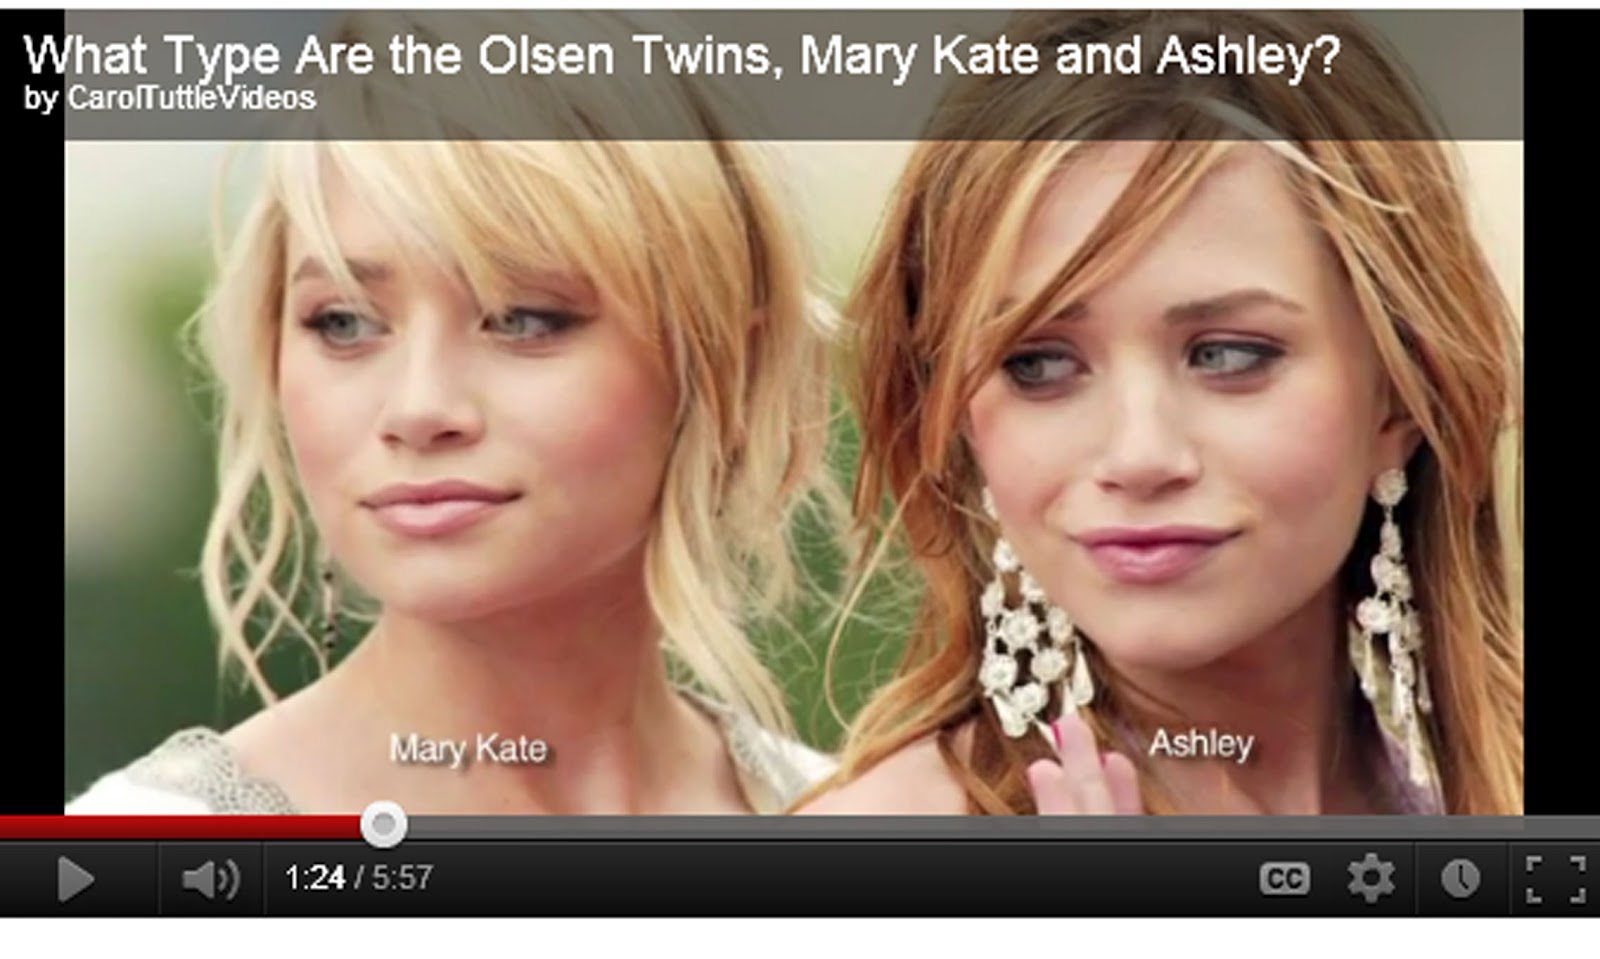 as ashley Olsen twins kate mary and